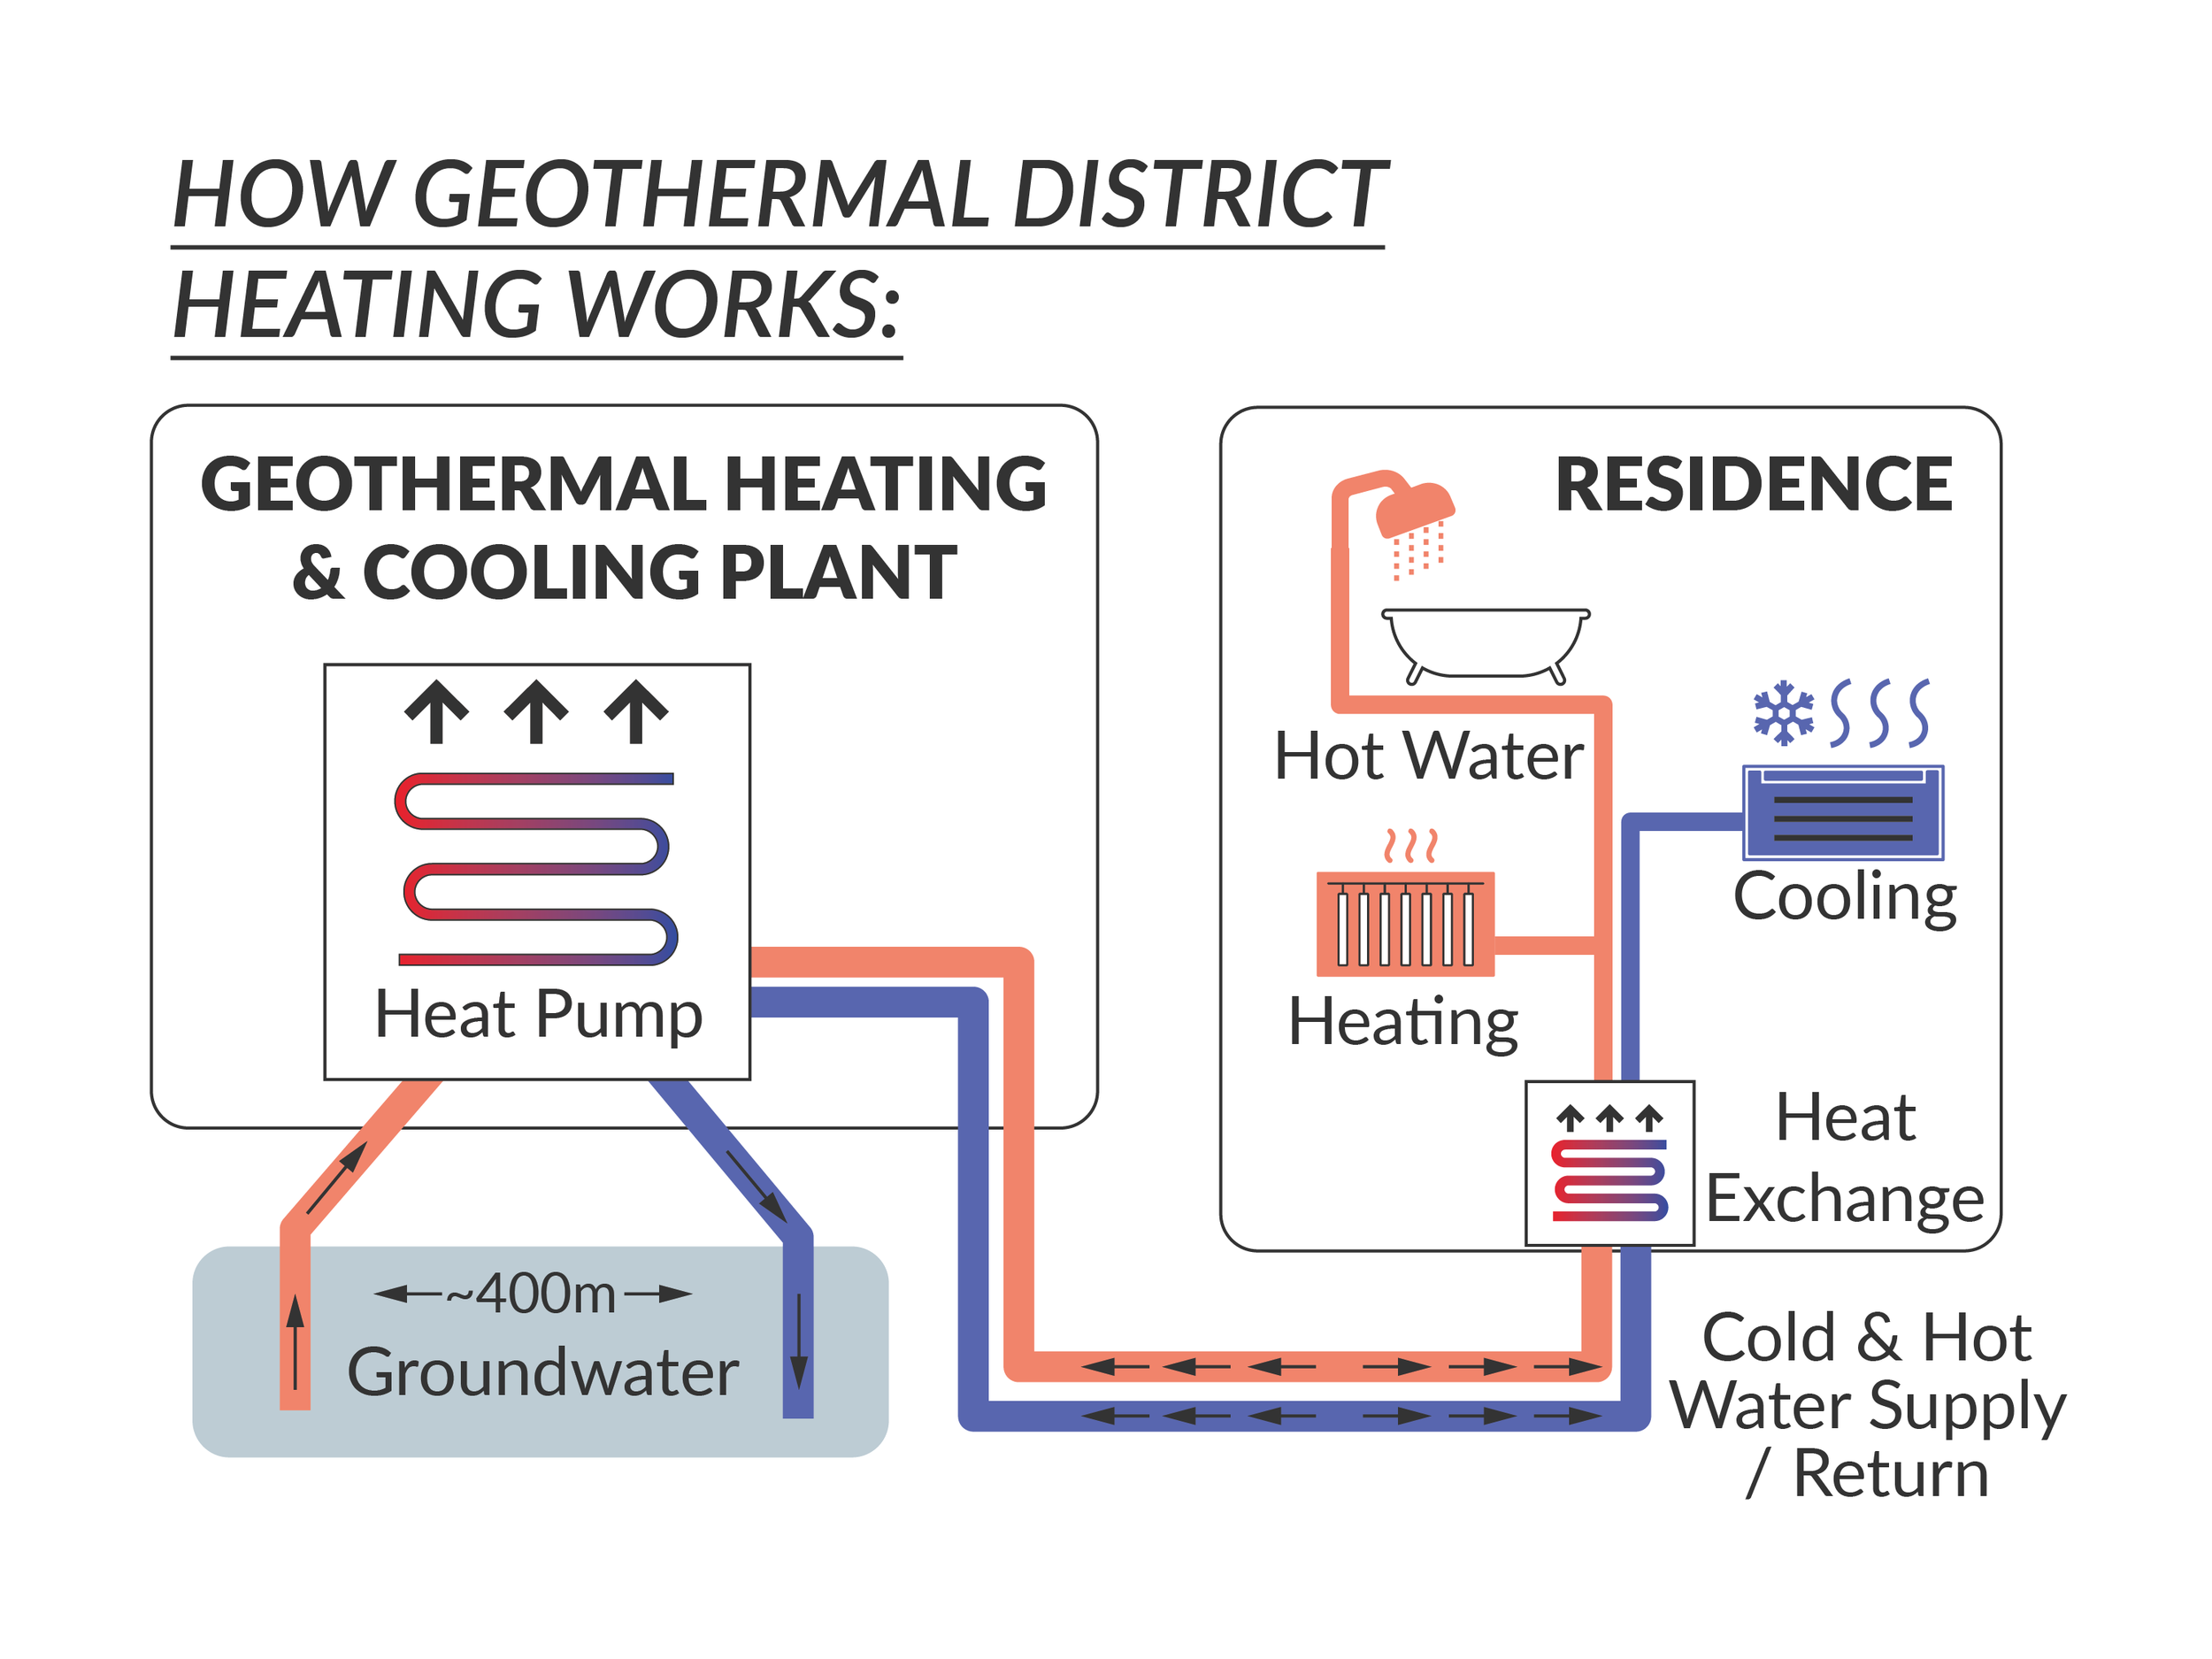 How Geothermal District Heating Works